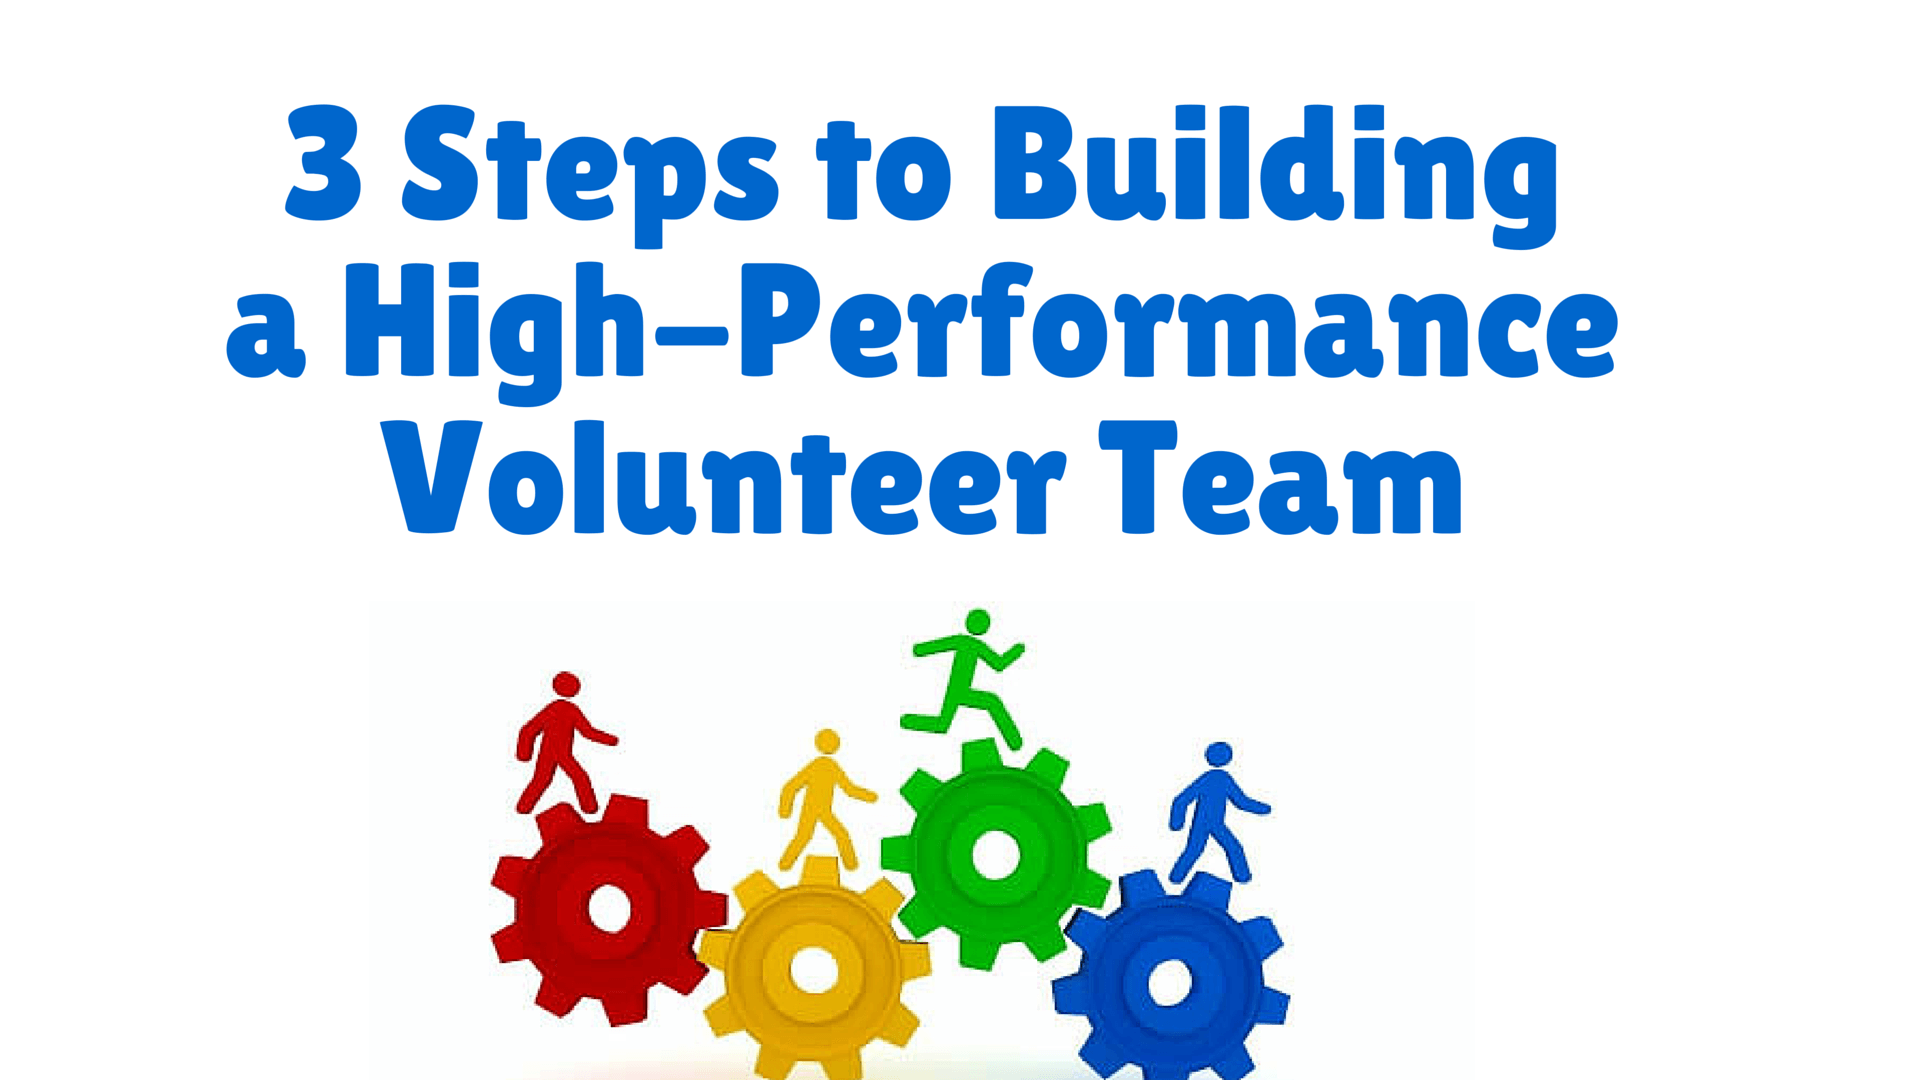 3 Steps to Building a High-Performance Volunteer Team